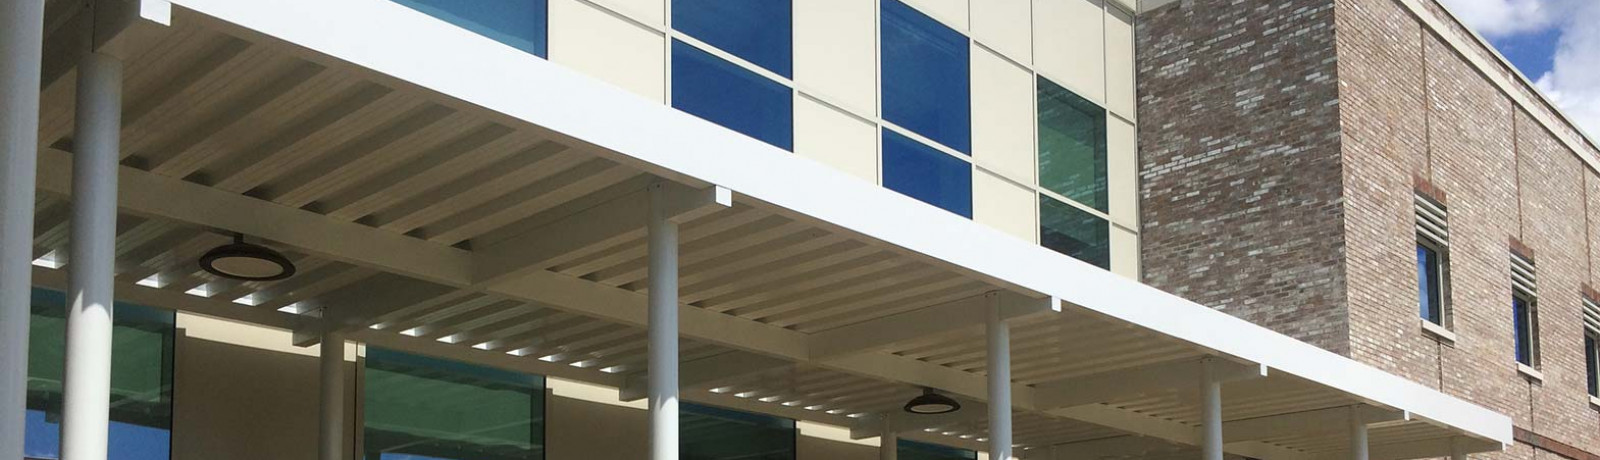 An example of an Aluminum walkway cover from Tennessee Valley Metals.